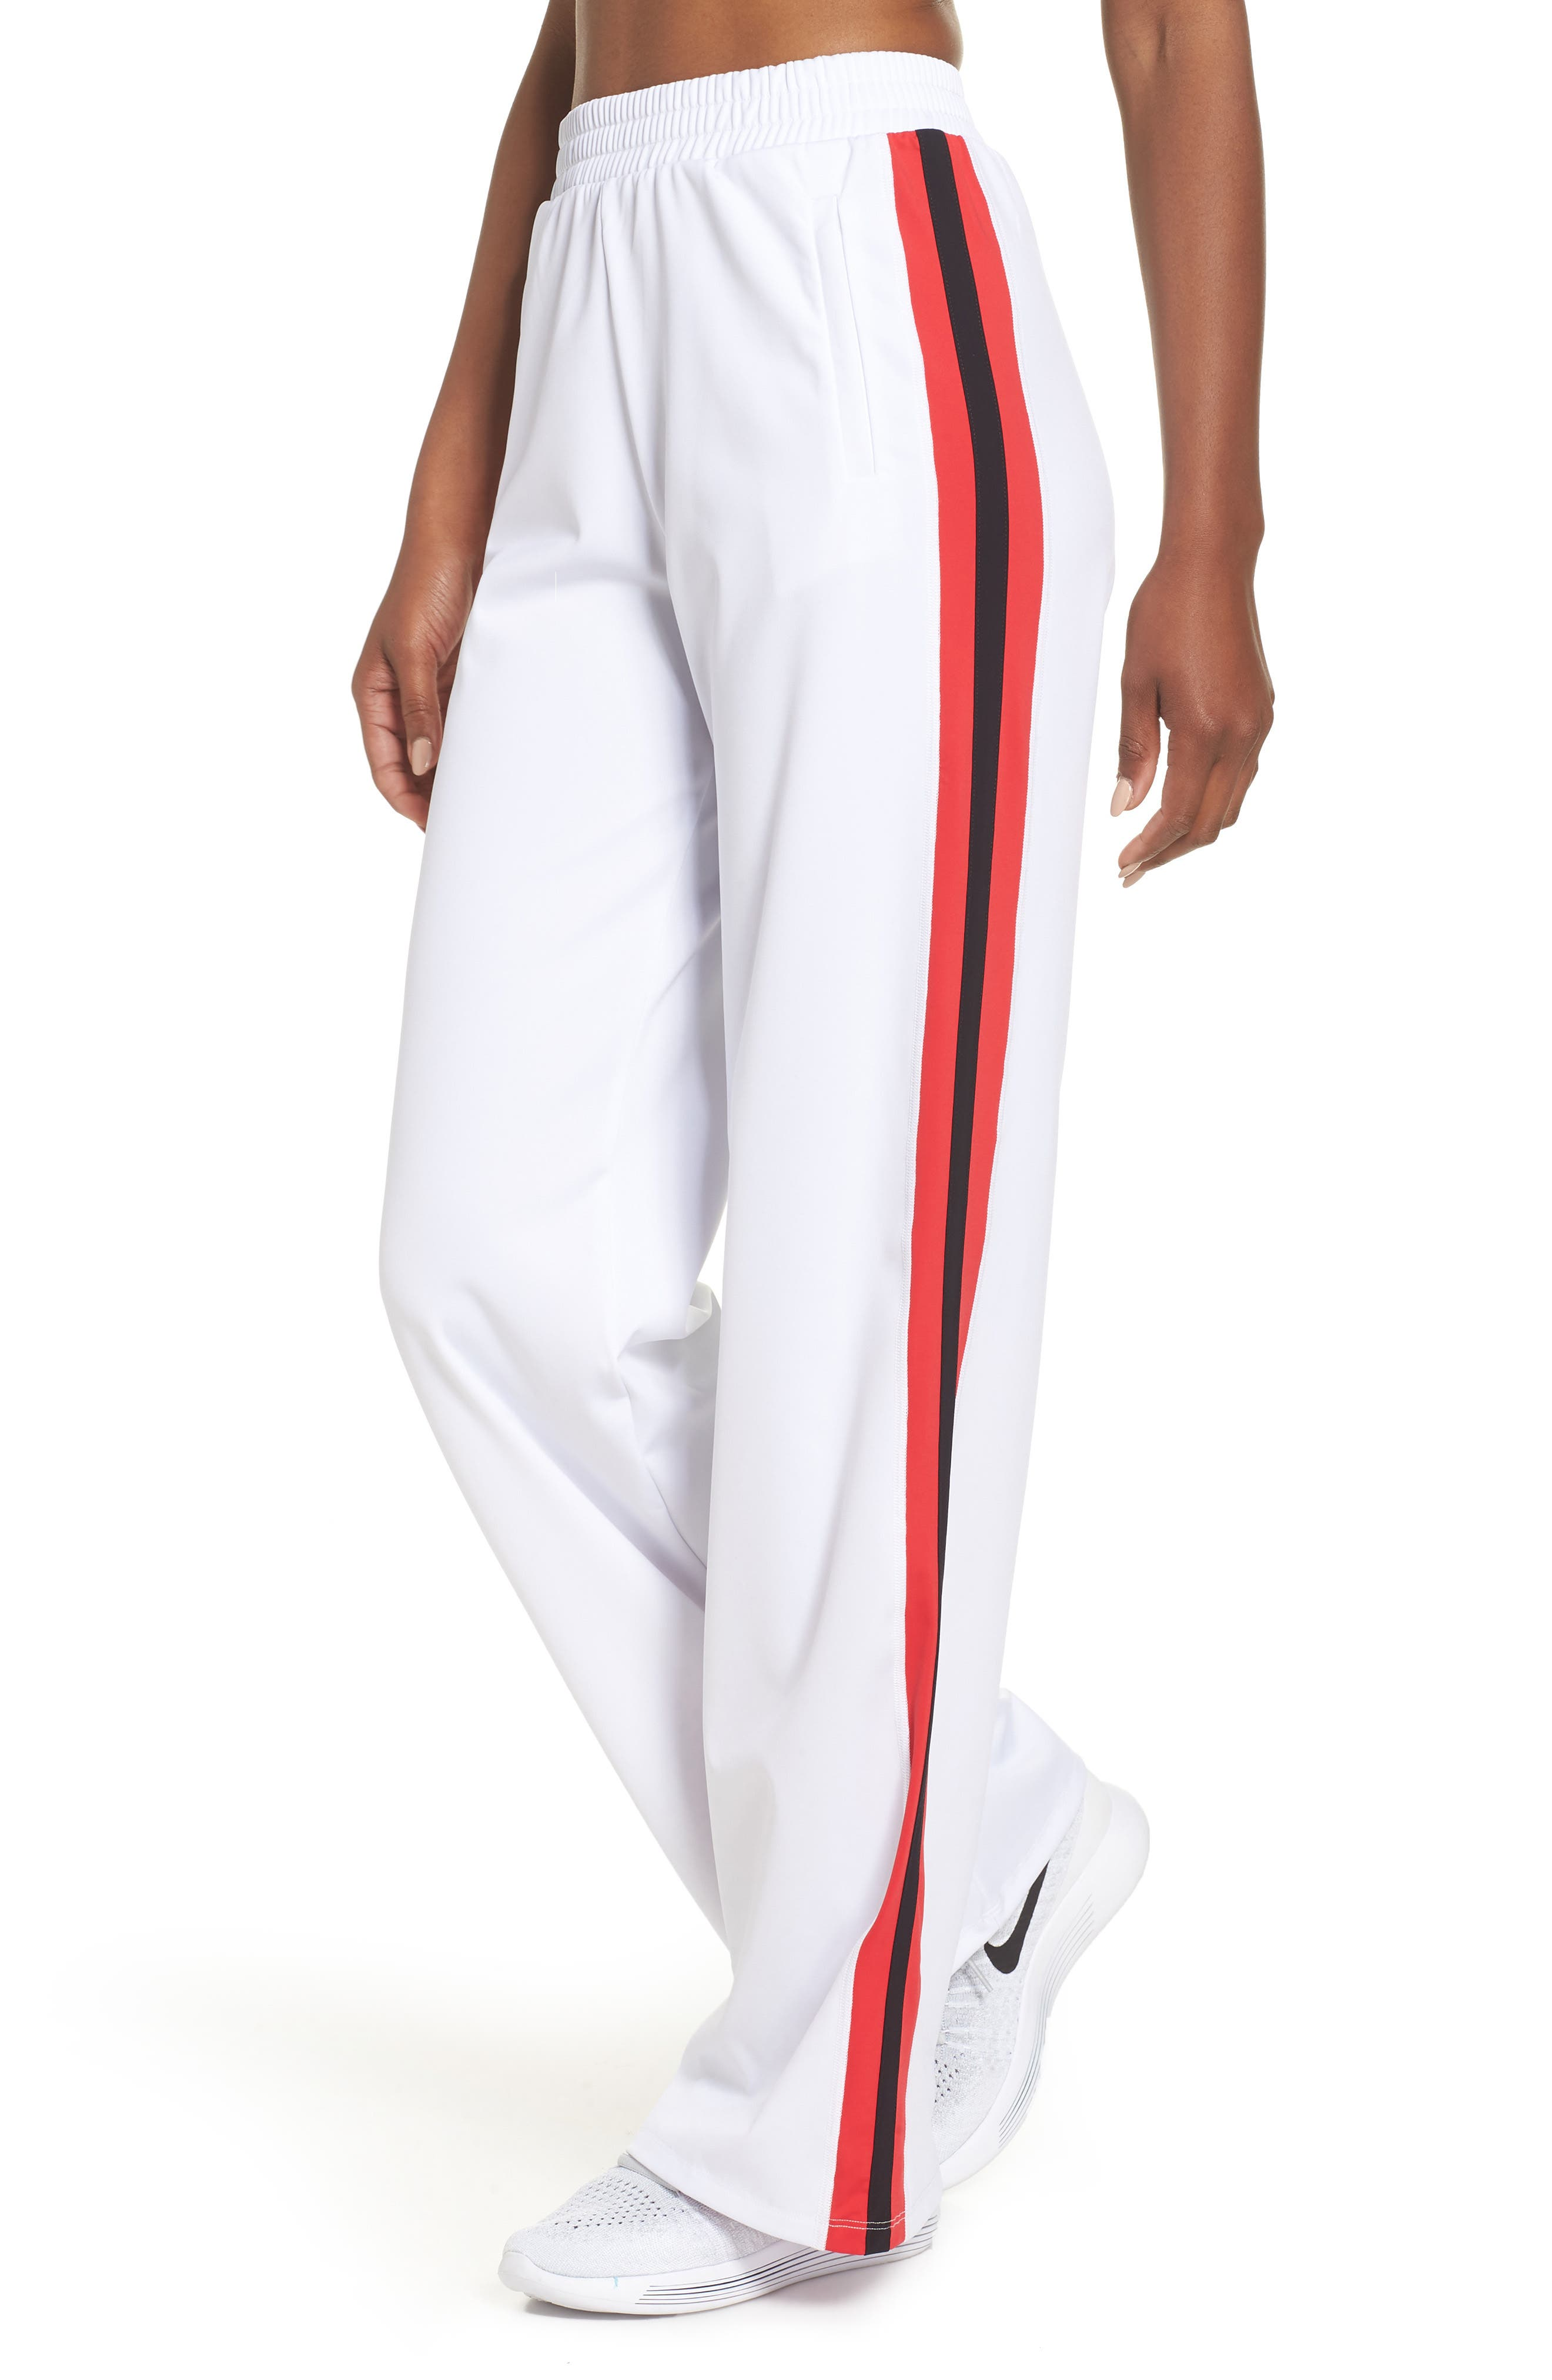 Wide Leg Track Pants,                         Main,                         color, White/ Red/ Black